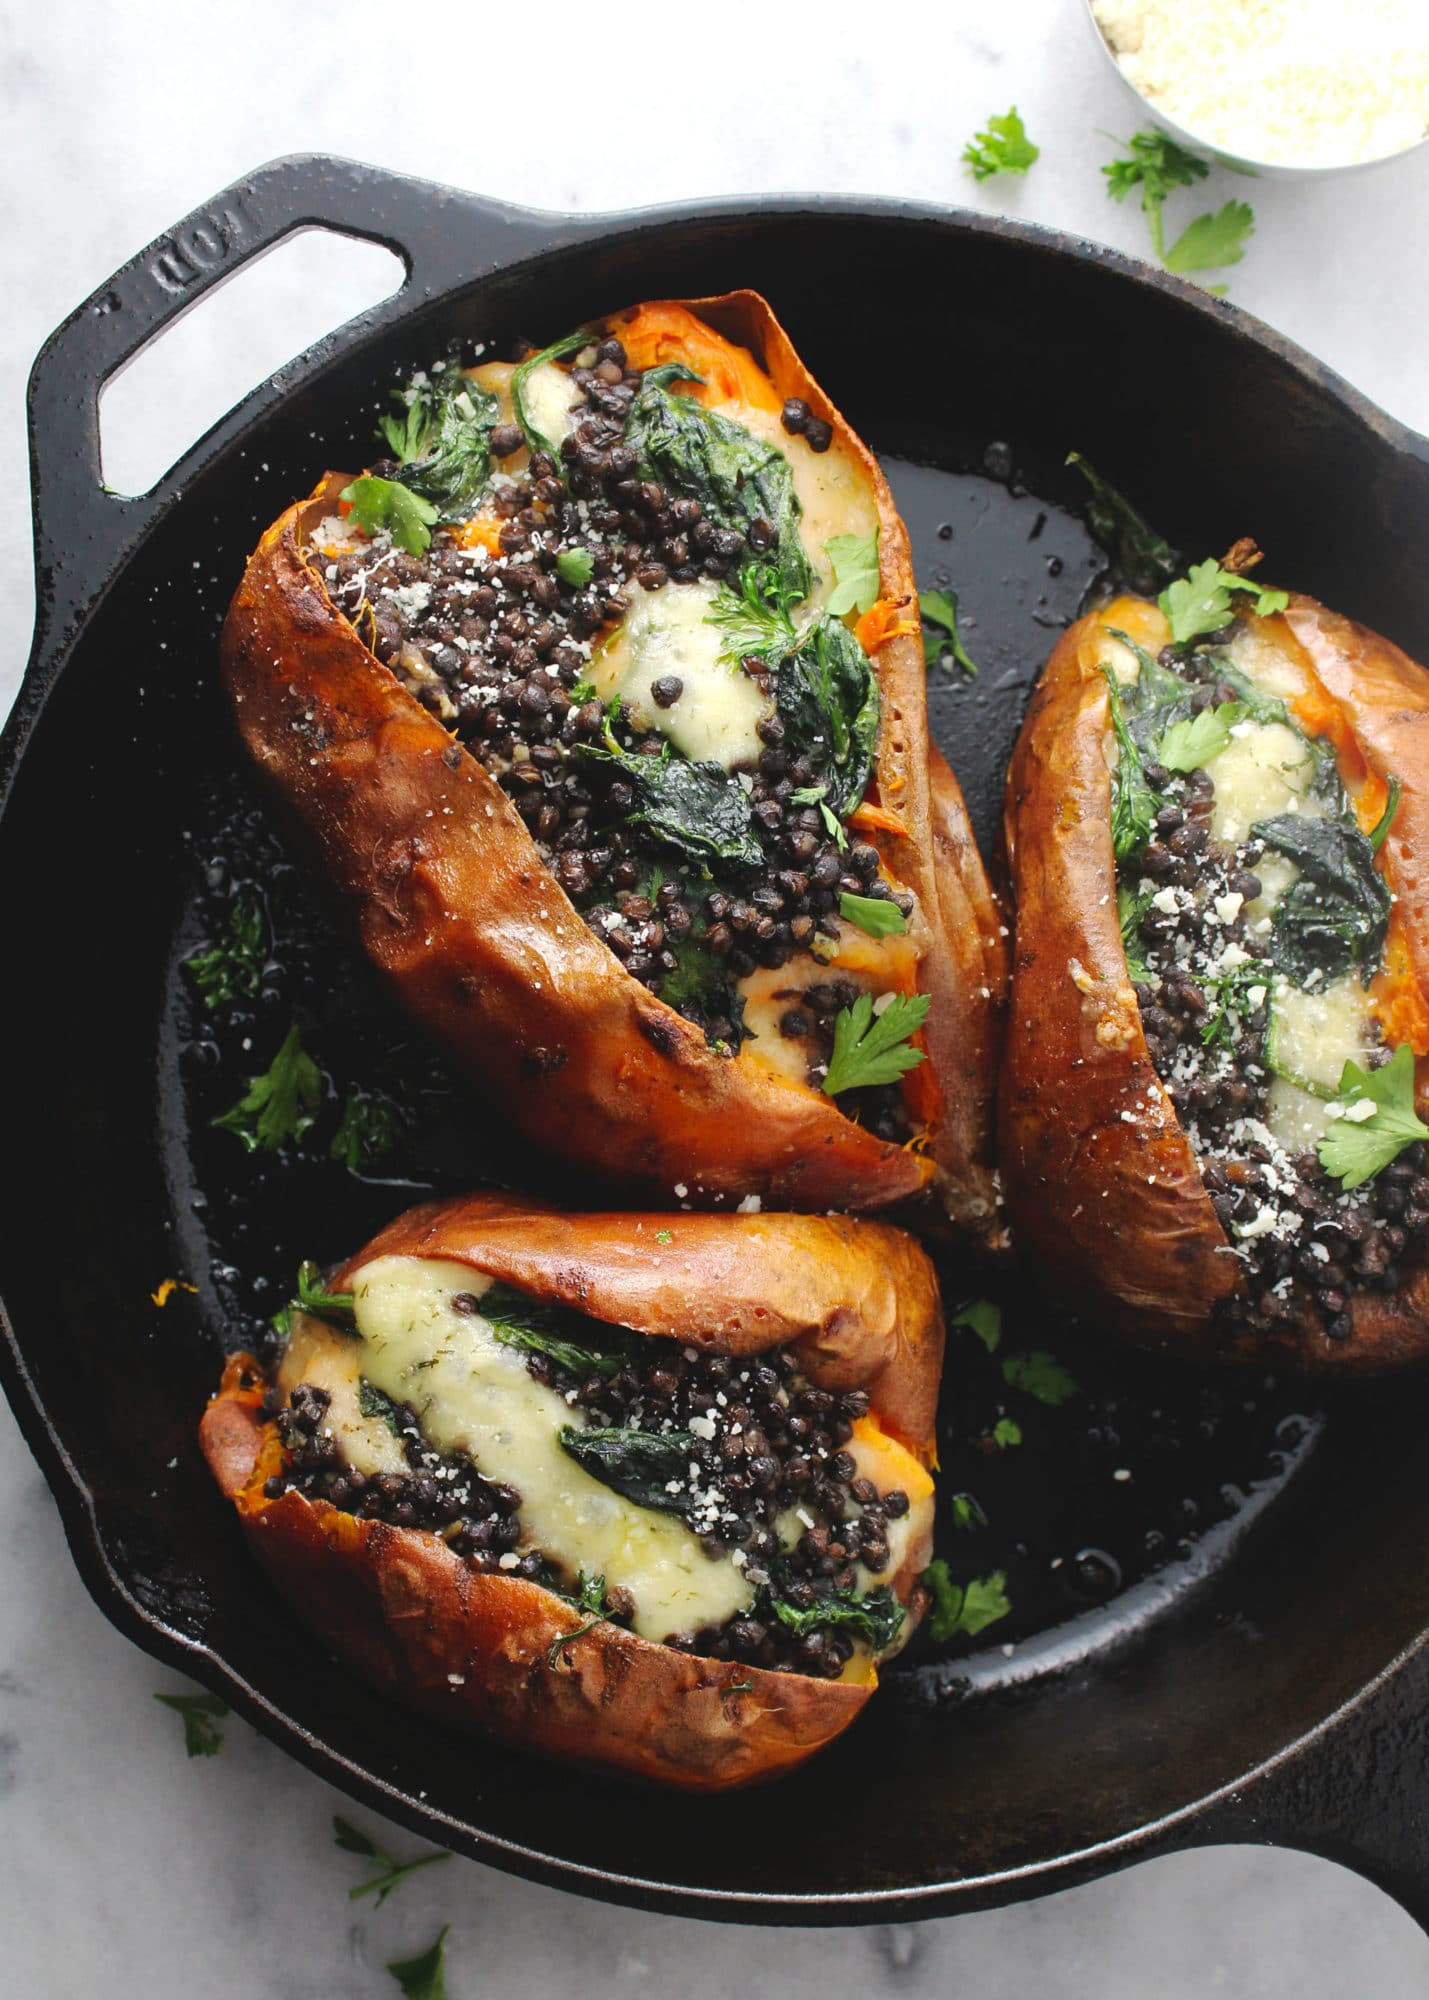 Loaded with Havarti cheese, creamed spinach, and garlic roasted lentils, these baked sweet potatoes really are the best ever | via @AimeeMarsLiving | #Loaded #SweetPotatoes #Lentils